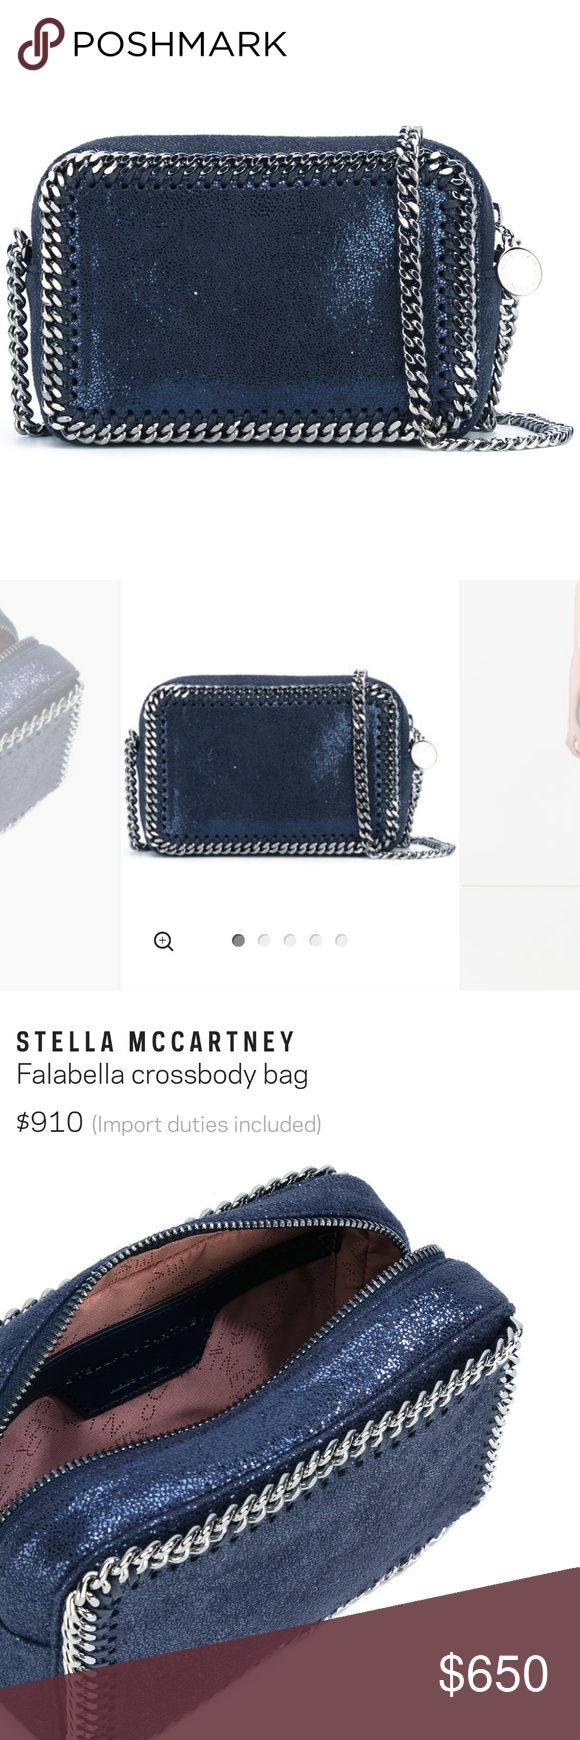 SALE Stella Mccartney Falabella crossbody bag Gorgeous brand new STELLA MCCARTNEY Falabella crossbody bag. Bought from Farfetch 1 month ago for $910. My loss is your gain! Price is lower through Е B A Y. Stella mccartney Bags Crossbody Bags